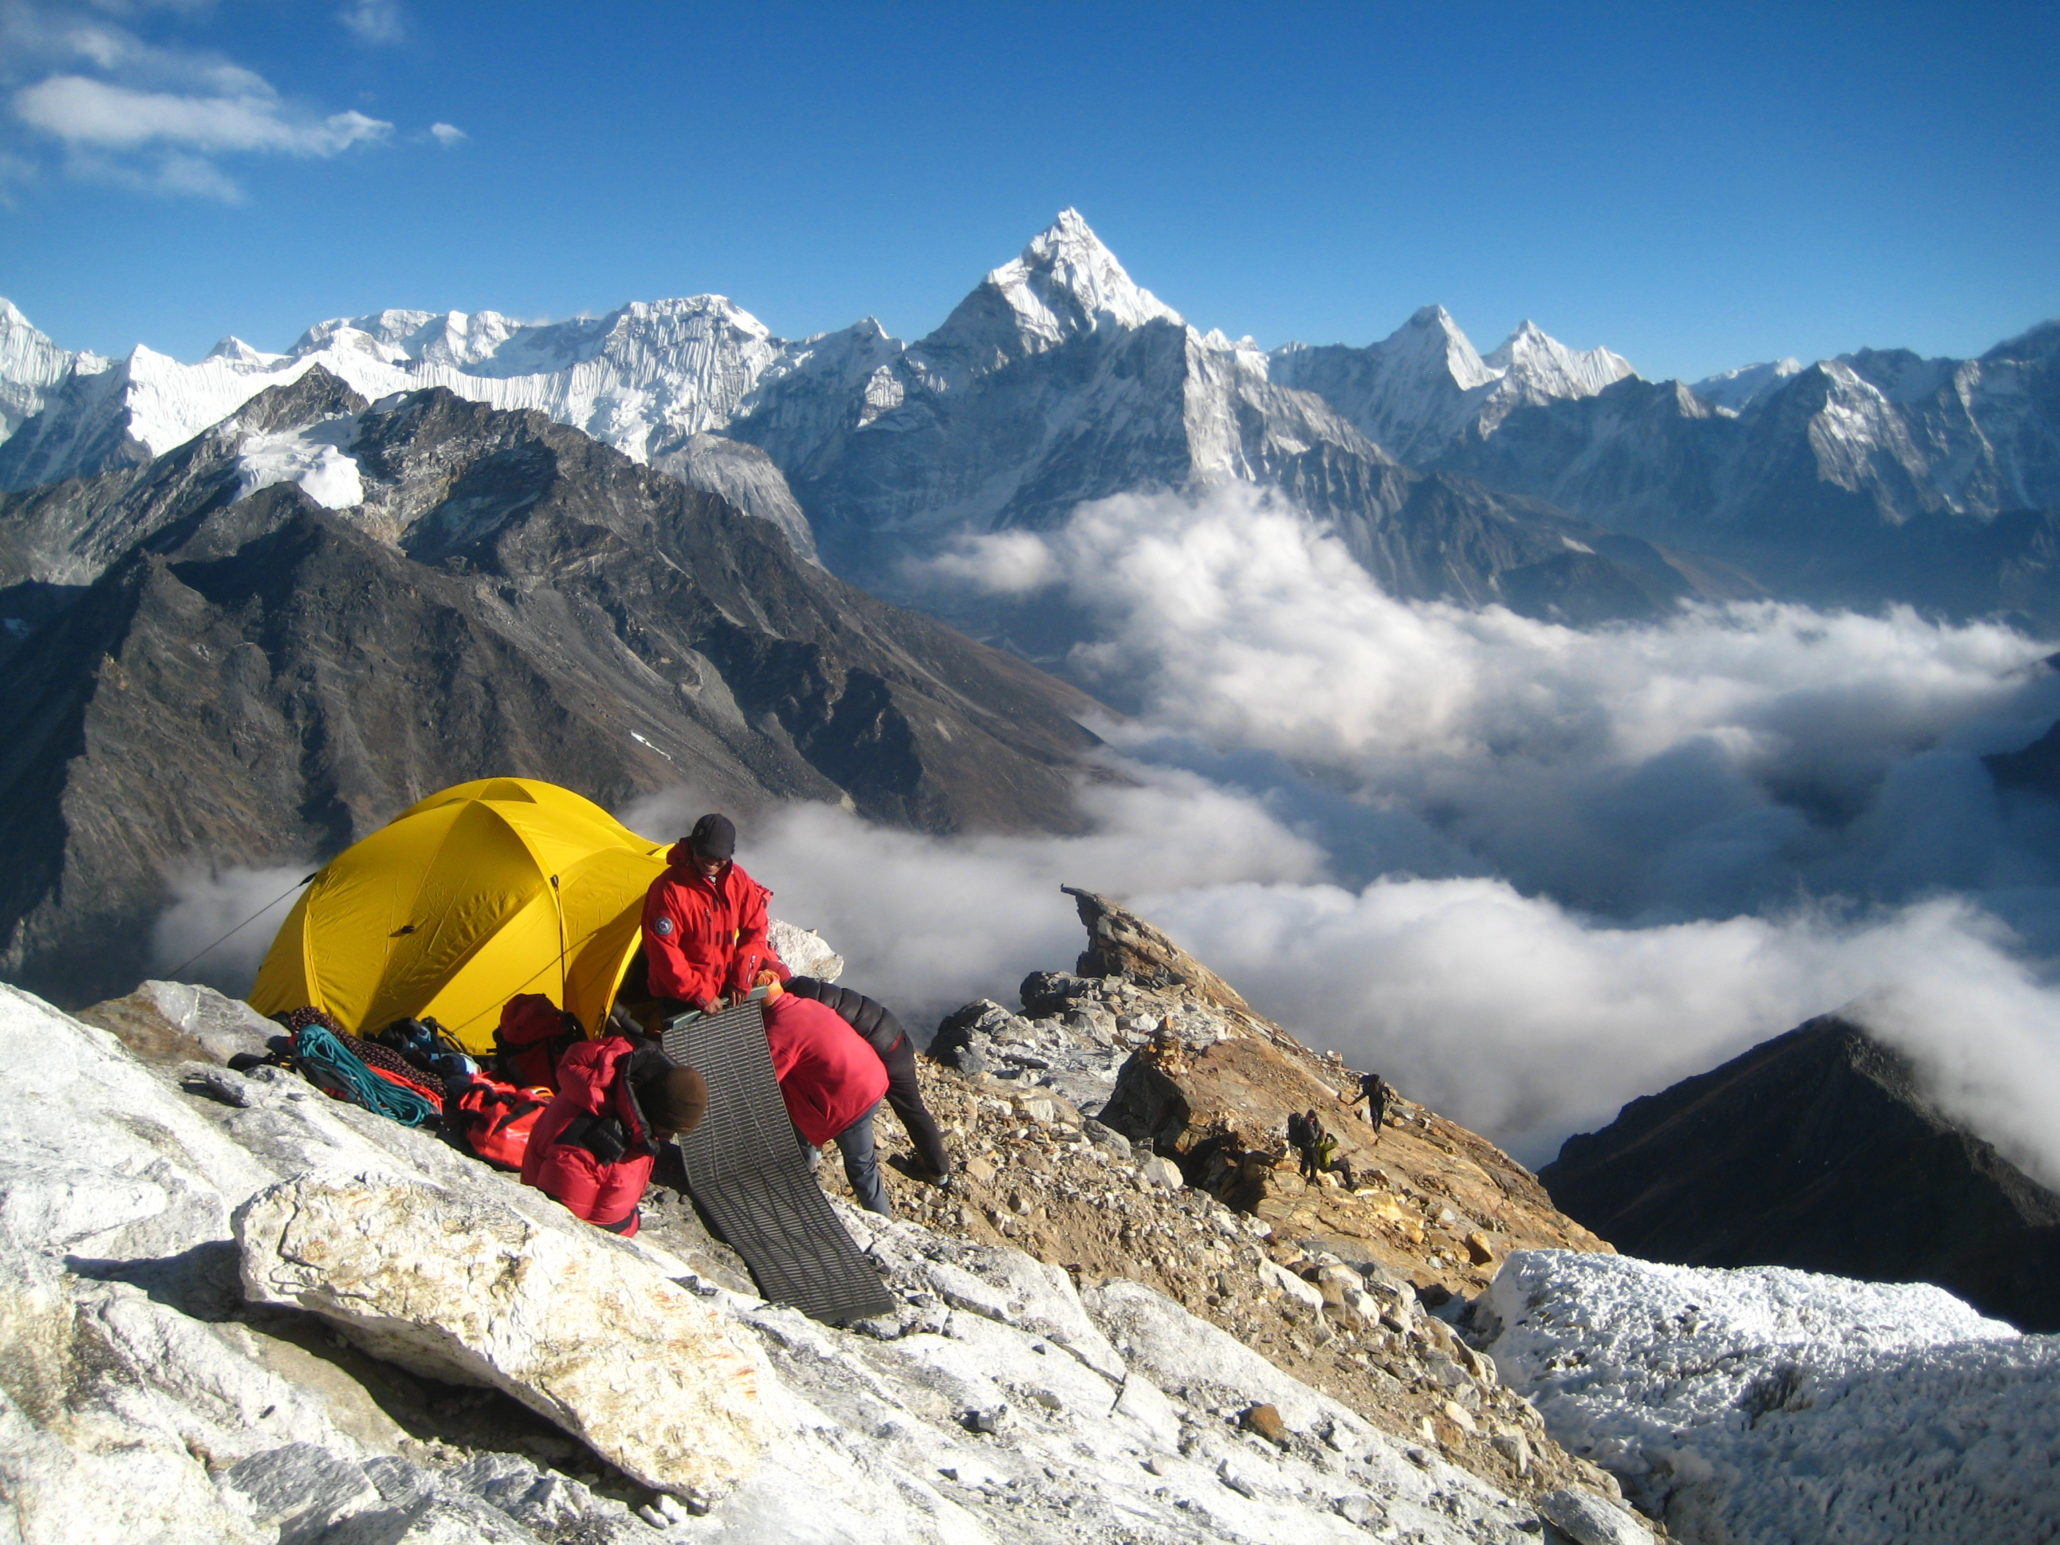 campers on the peak of Himalayan Mountains